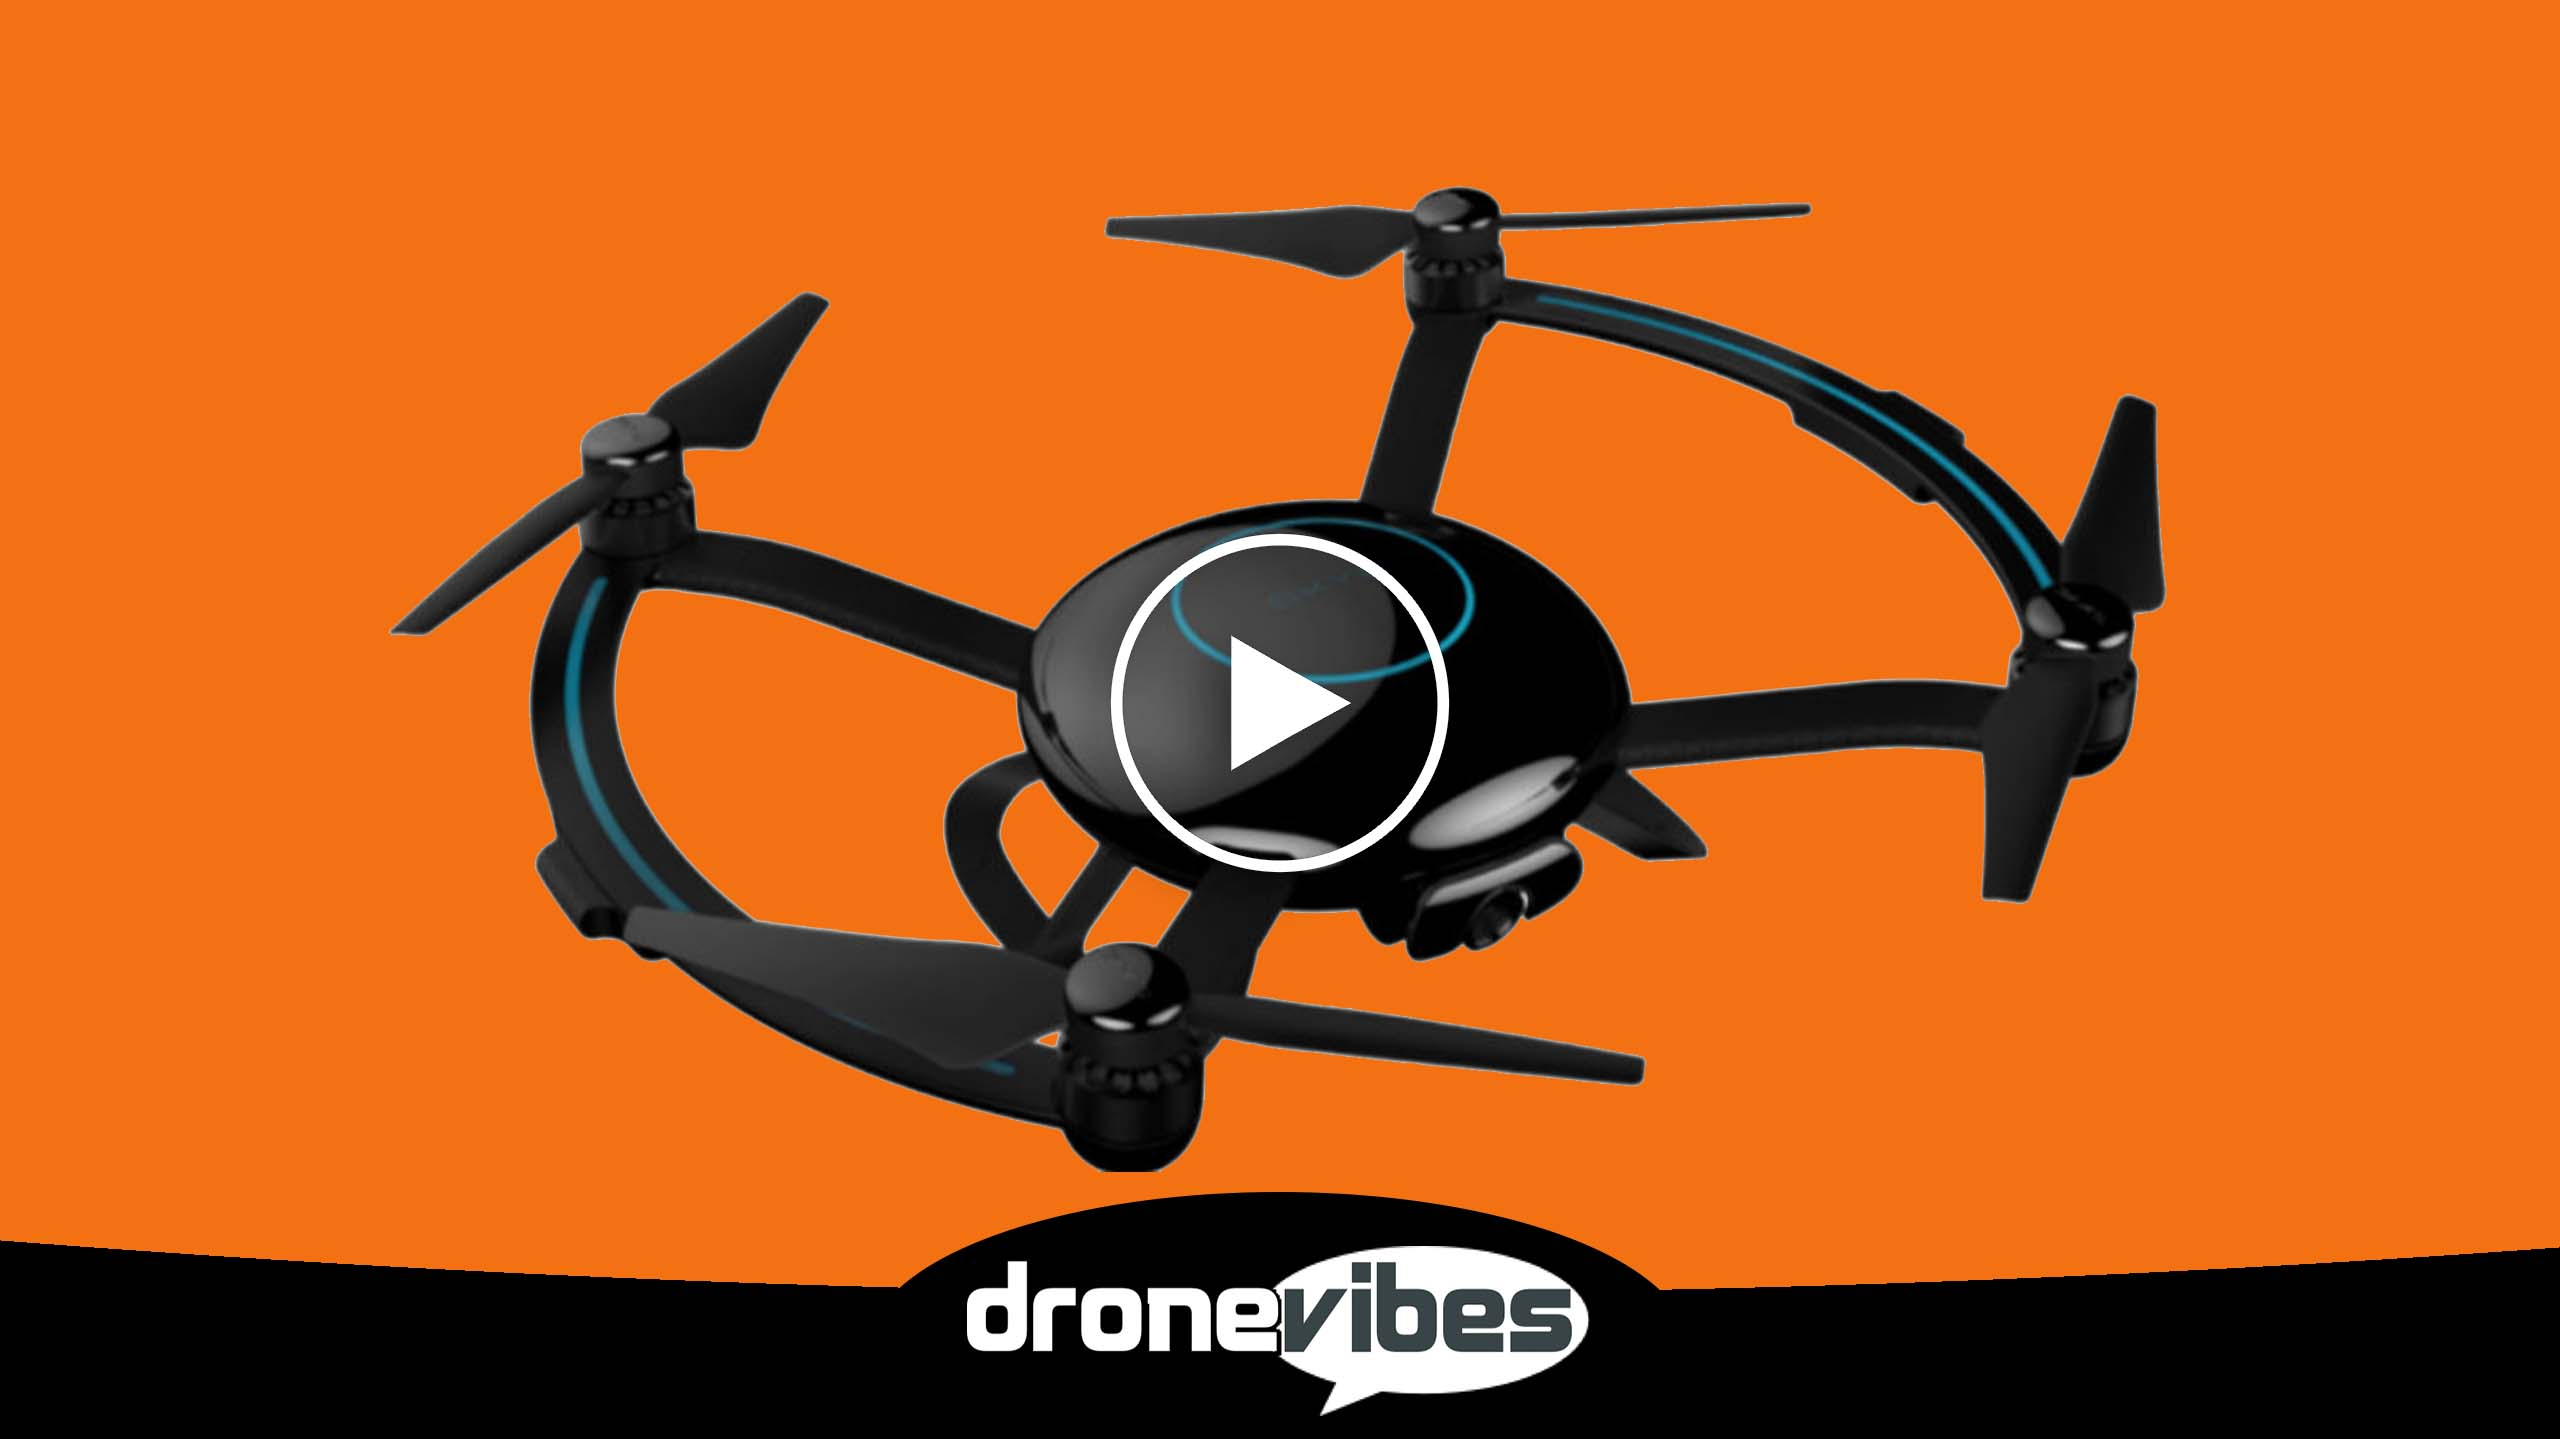 Introducing Orbit Drone by Skye Intelligence – Interview with David Sliwa, Skye Intelligence.